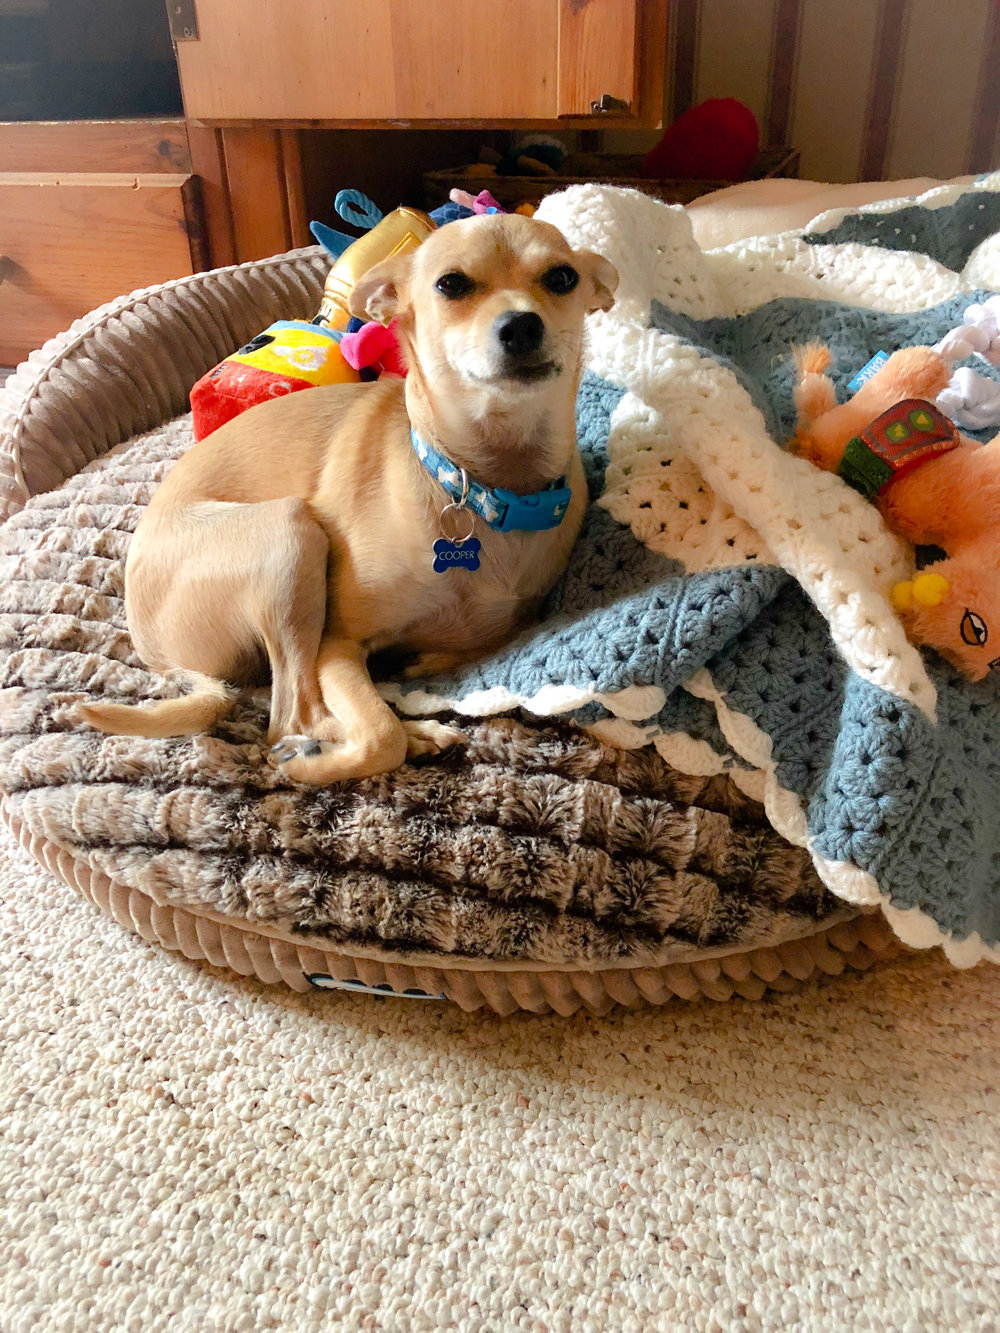 Cooper loves his Beautyrest dog bed! Although this is an older model, there are so many cute ones out there that are great for dog muscles and bones or those who need a comfortable bed to rest their little bodies! I've linked up some super cute ones from Amazon!